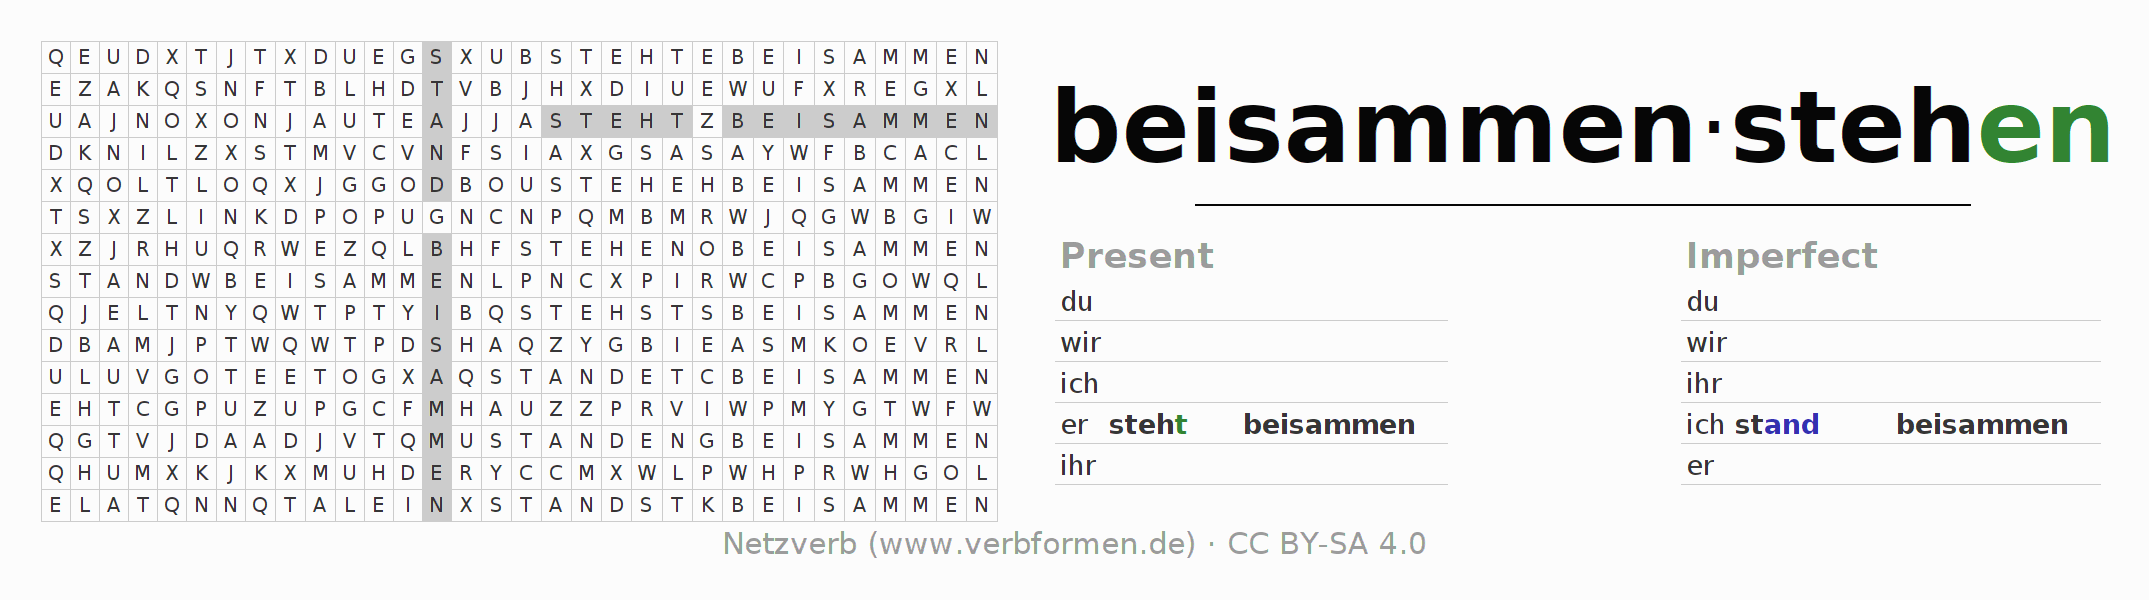 Word search puzzle for the conjugation of the verb beisammenstehen (hat)